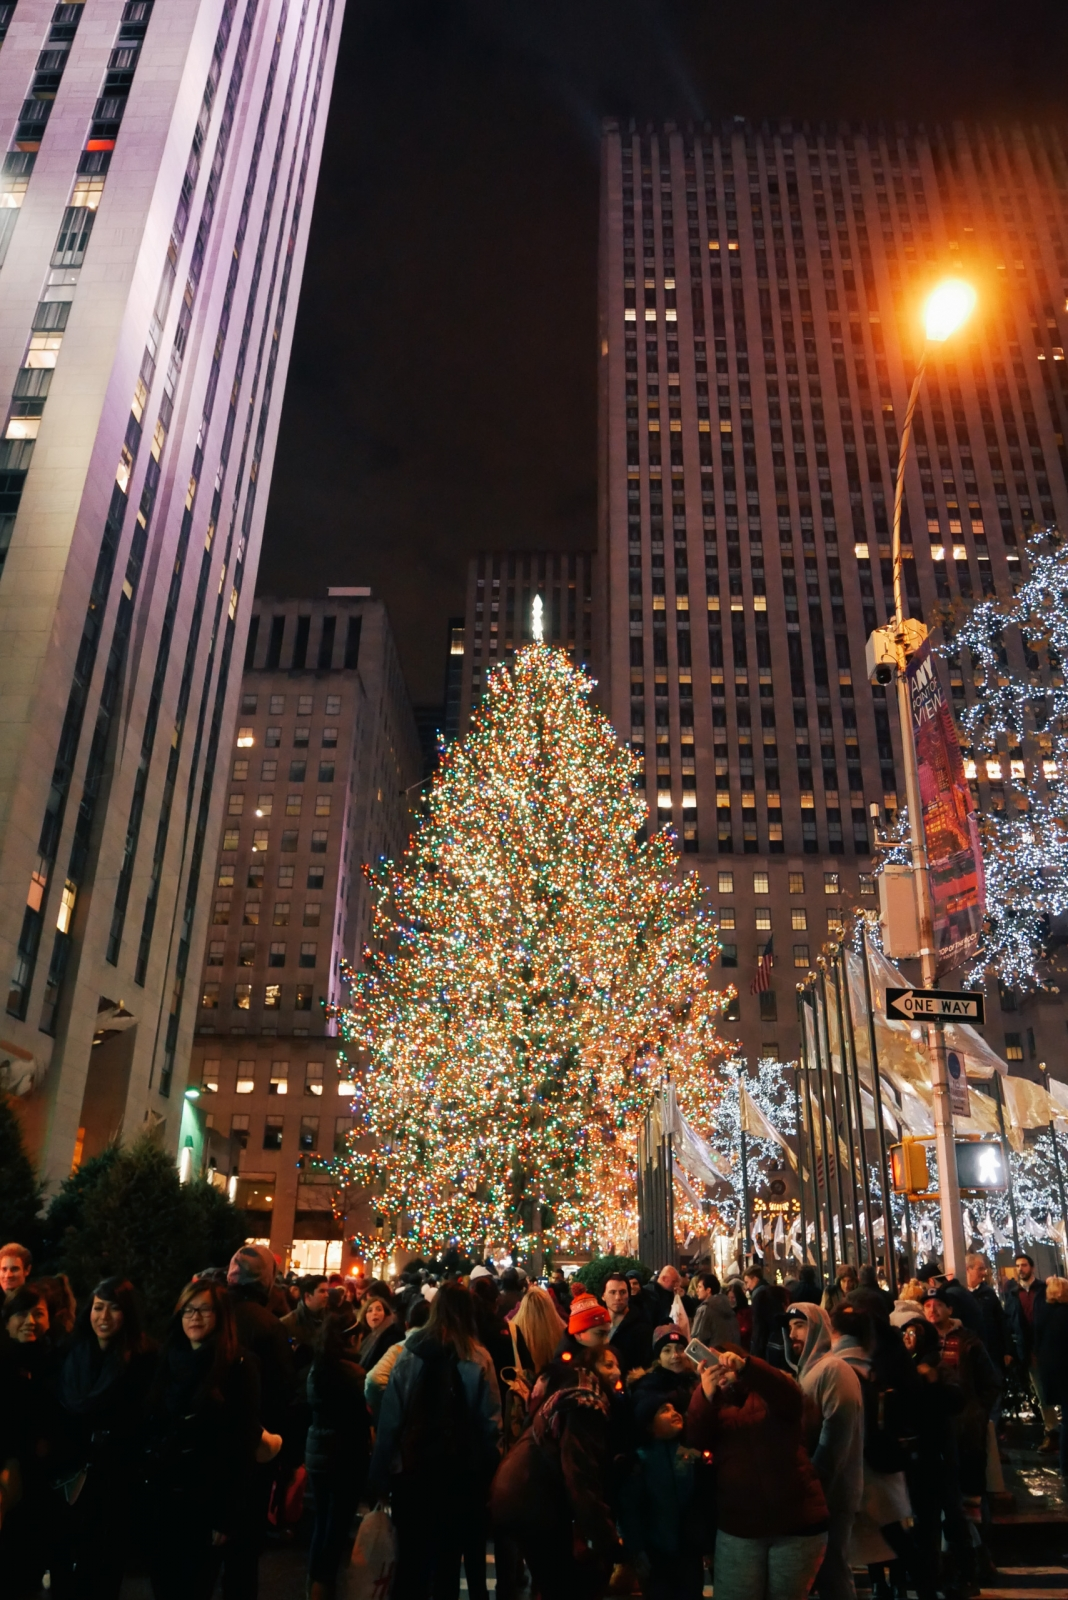 Rockefeller Center Christmas tree and its crowds